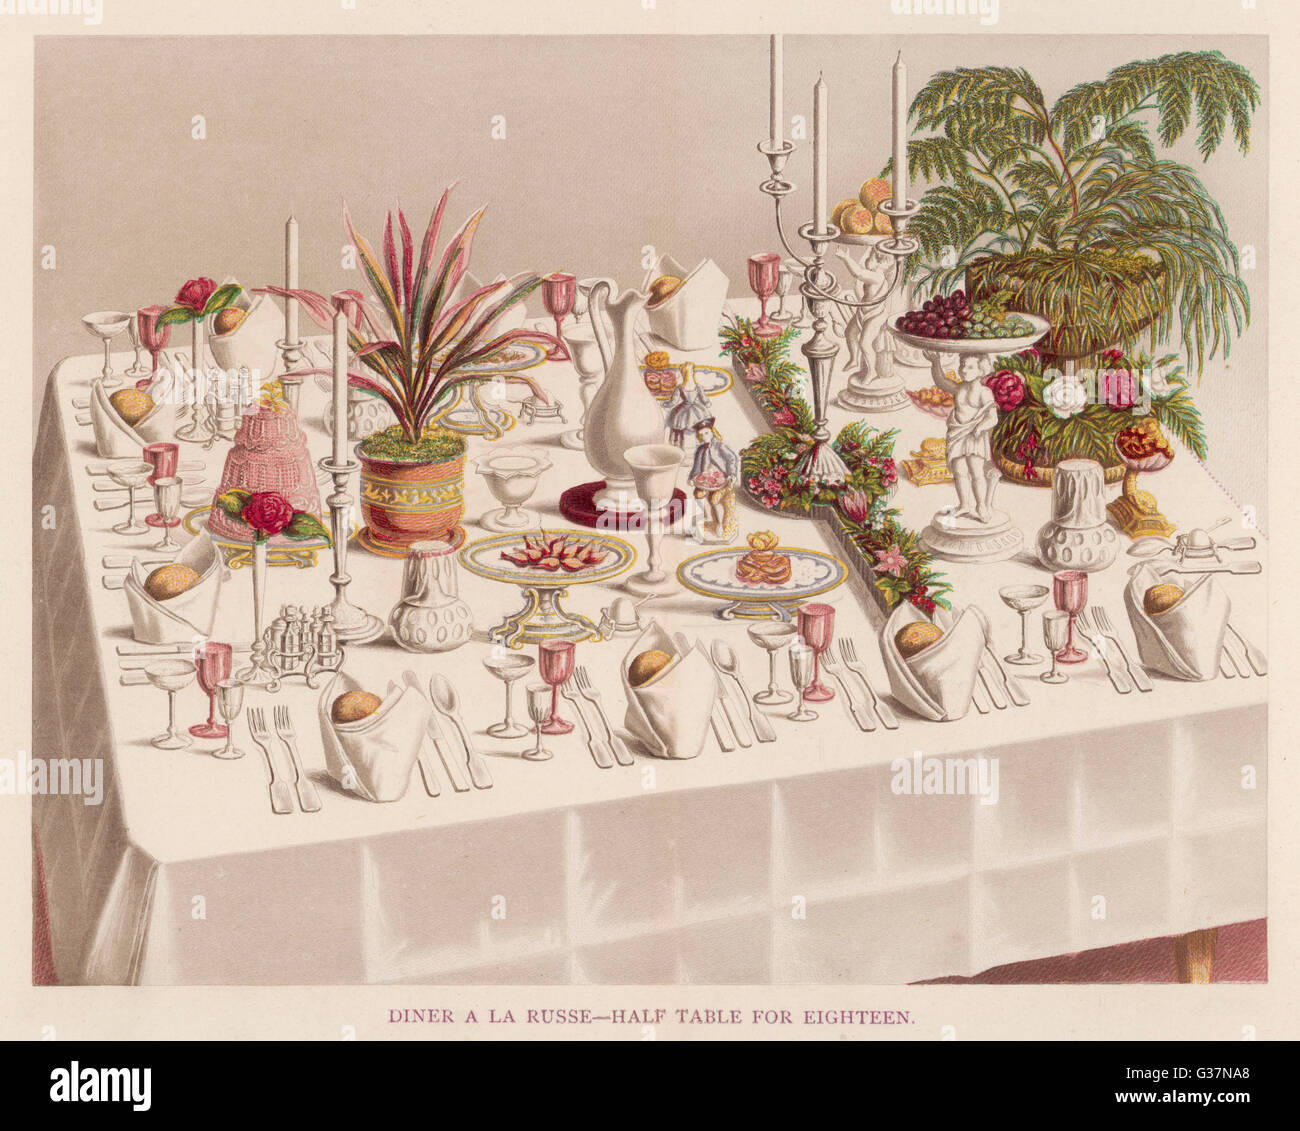 DINER A LA RUSSE, half-table for eighteen  persons        Date: 1873 - Stock Image